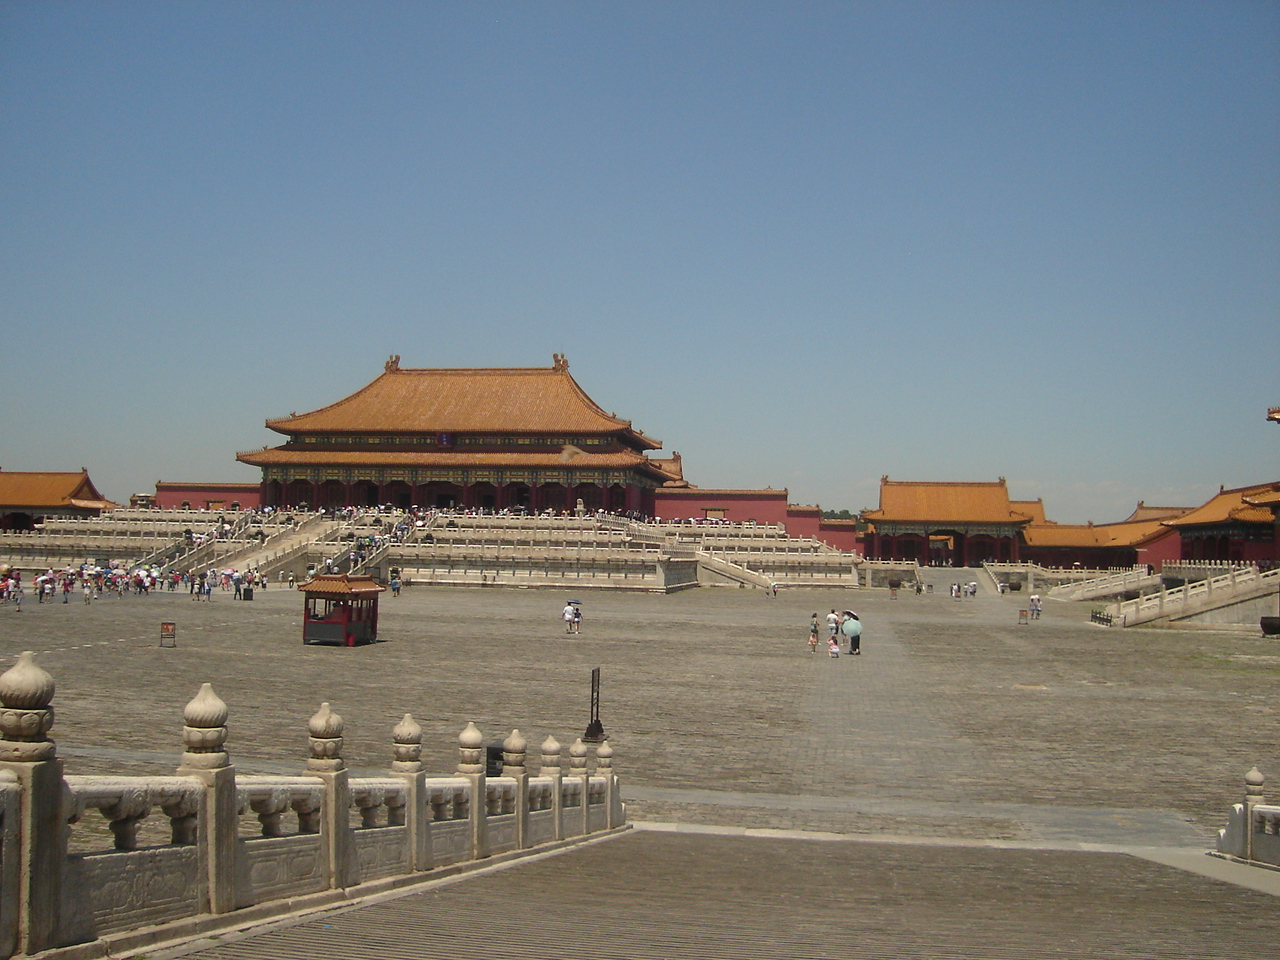 Forbidden City Courtyard